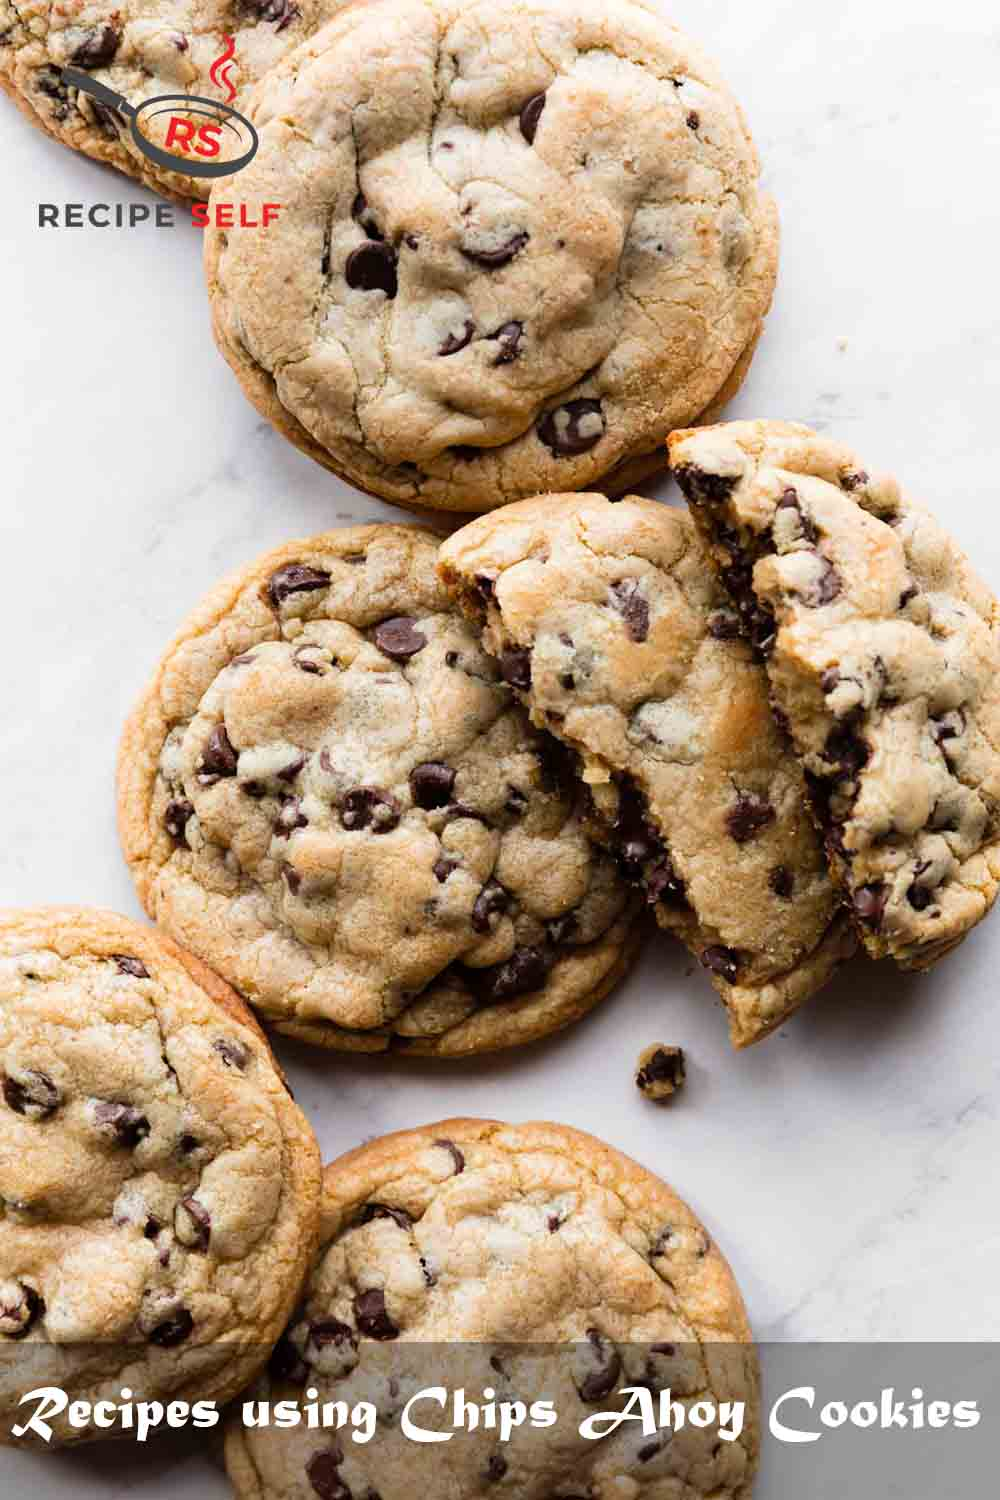 Recipes using Chips Ahoy Cookies